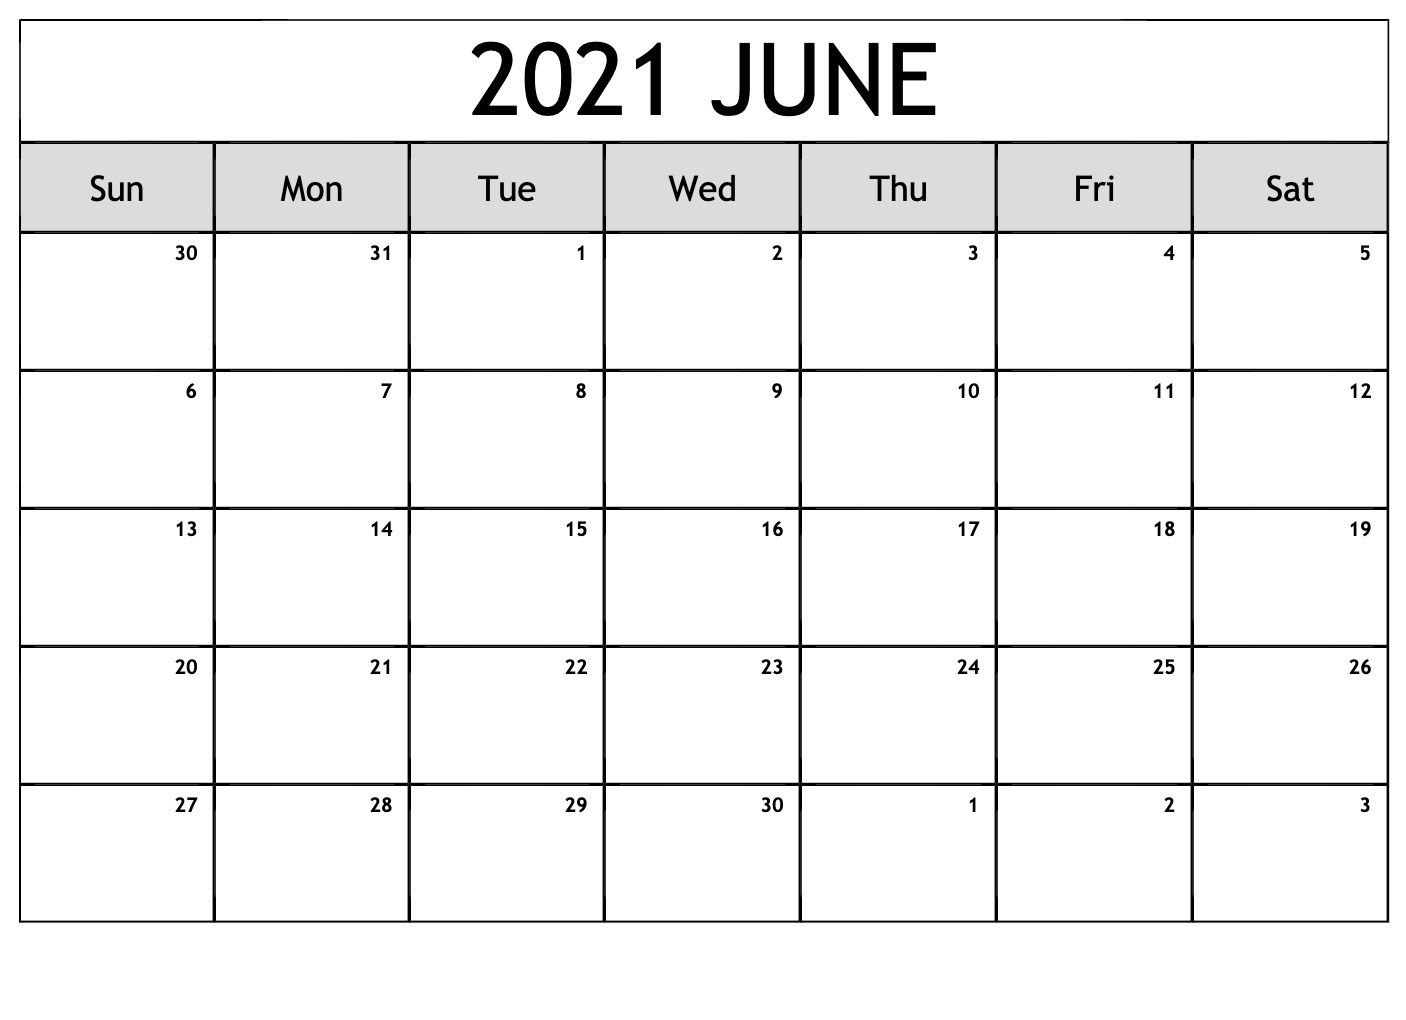 Free June 2021 Calendar With Holidays - Thecalendarpedia June 2021 Calendar With Holidays Printable